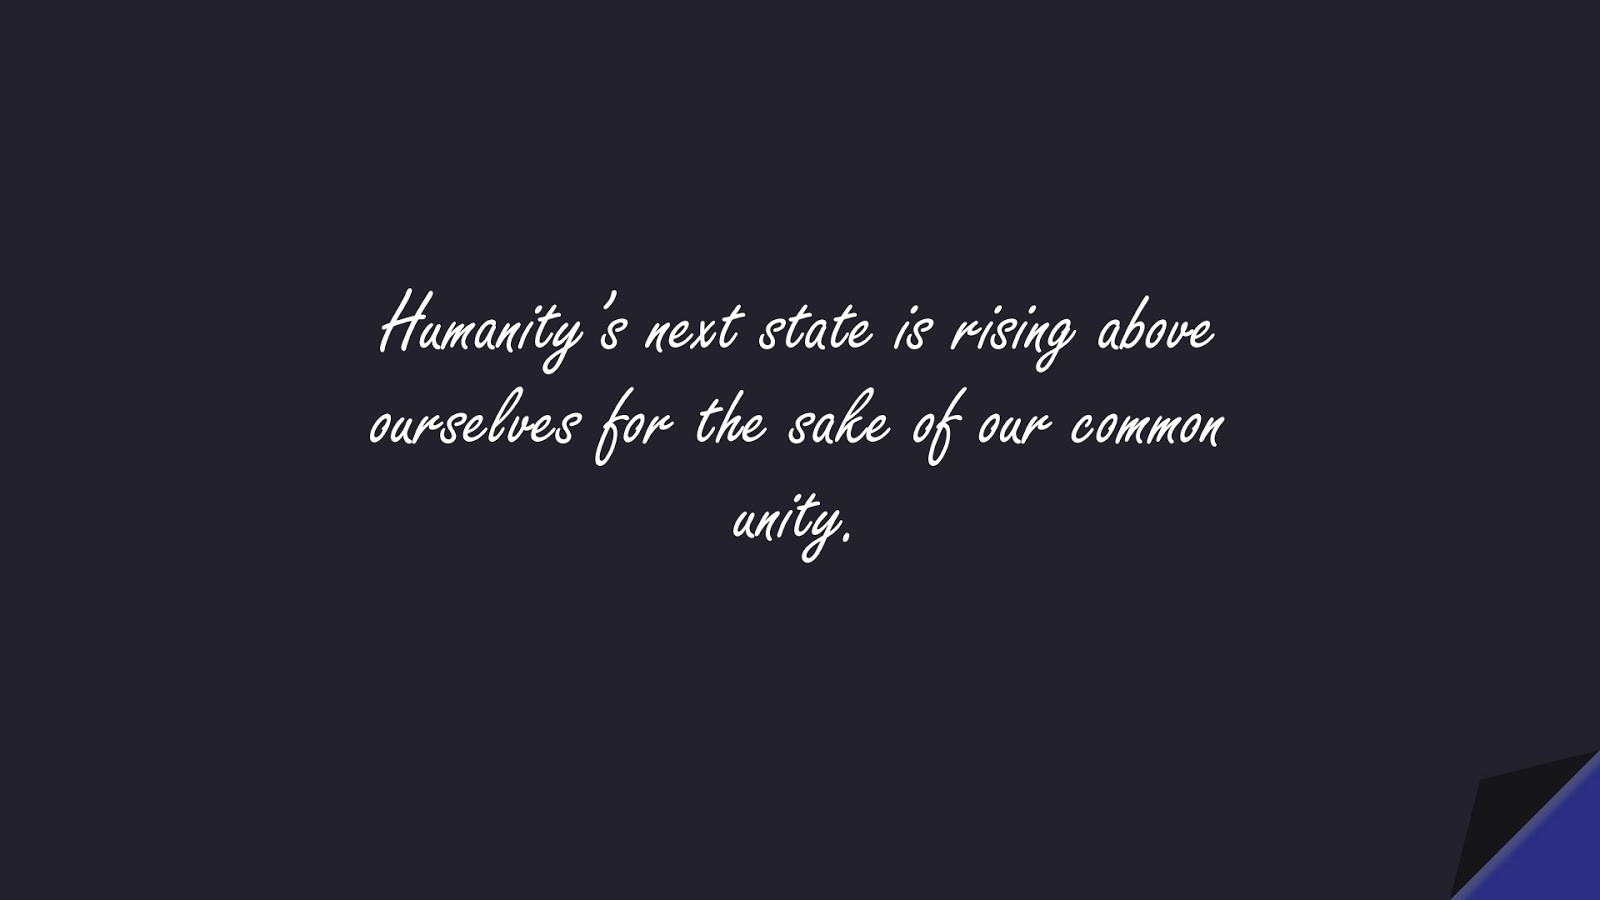 Humanity's next state is rising above ourselves for the sake of our common unity.FALSE